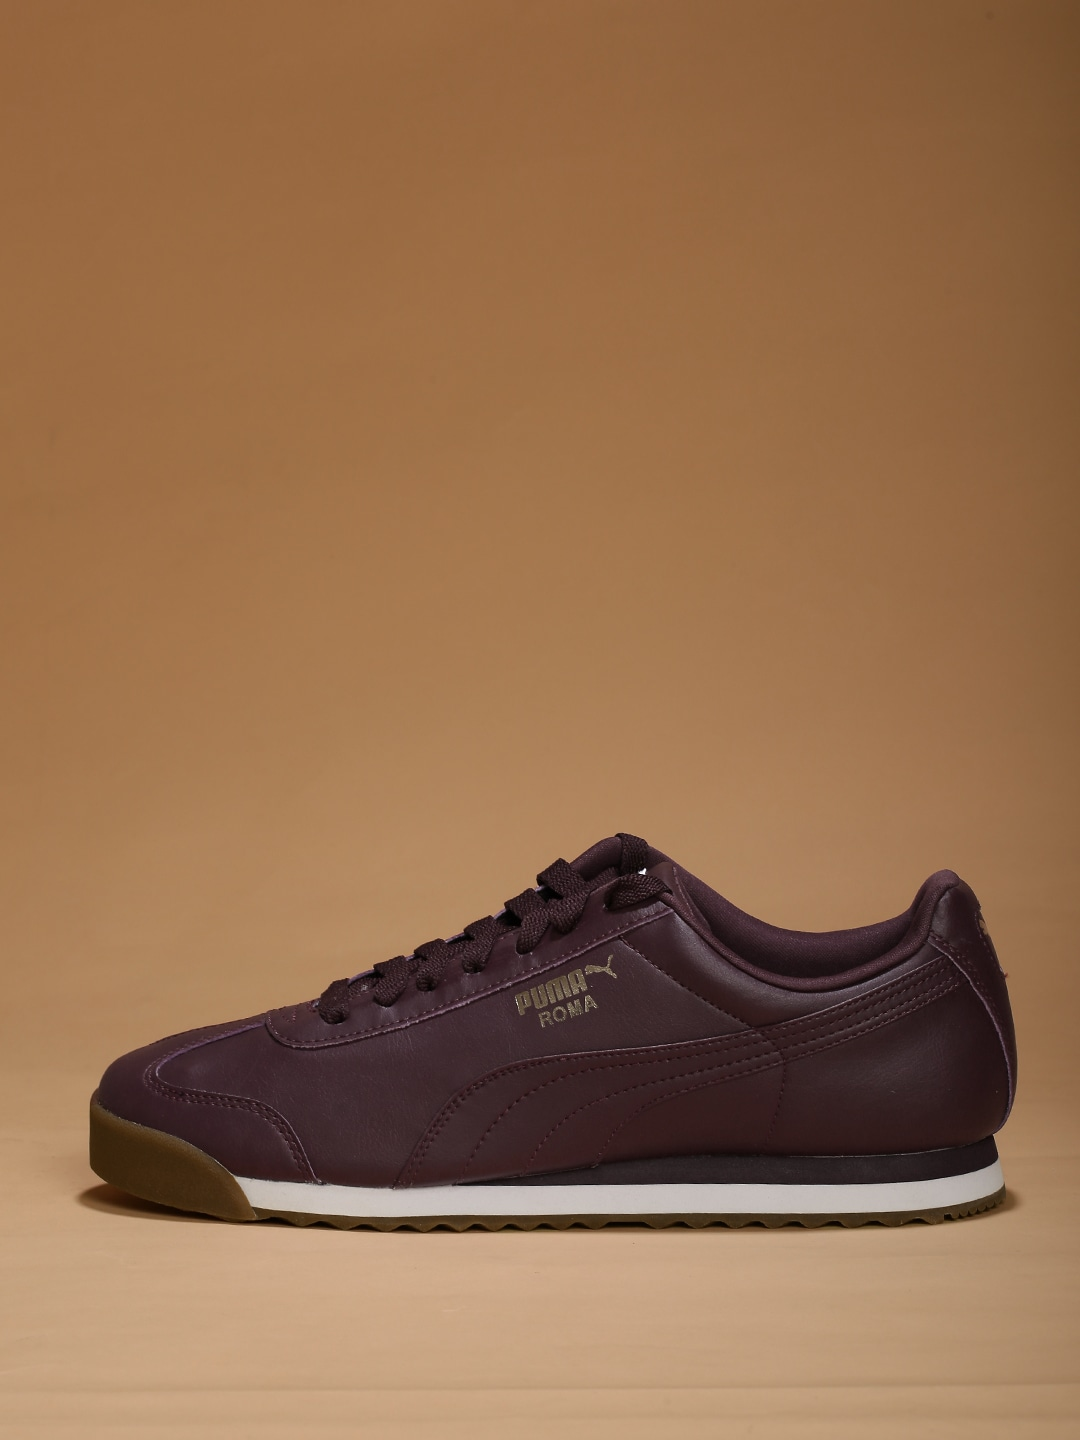 Puma Tazon 6 Wov Purple Sneakers for Men online in India at Best ... 6336140d3